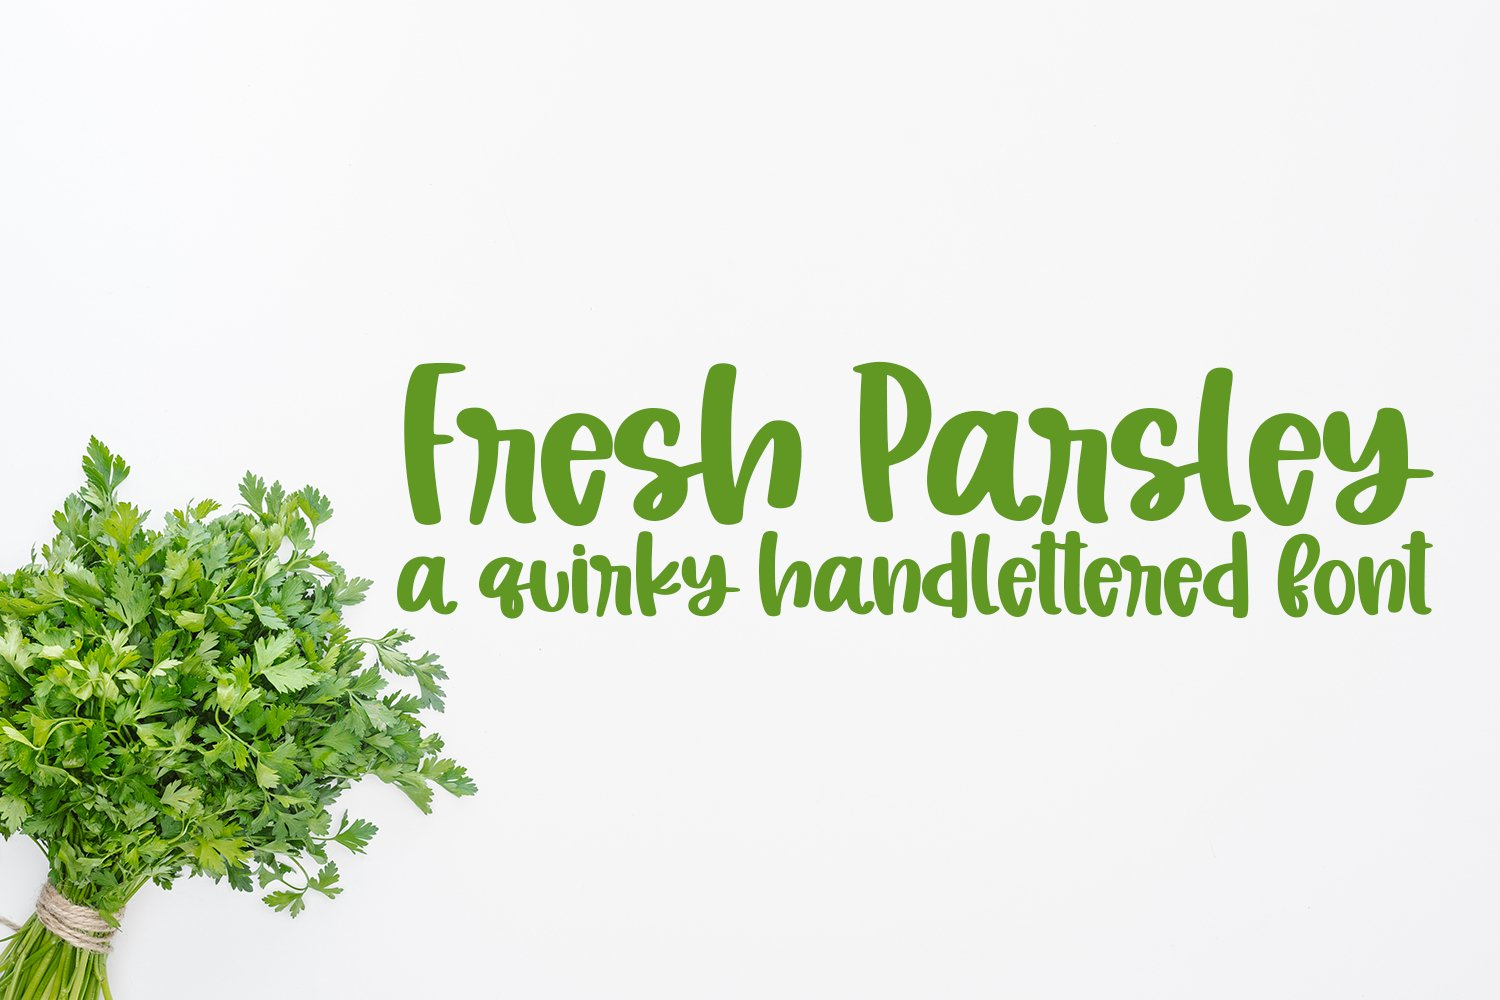 Fresh Parsley - A Quirky Hand-Lettered Font example image 1